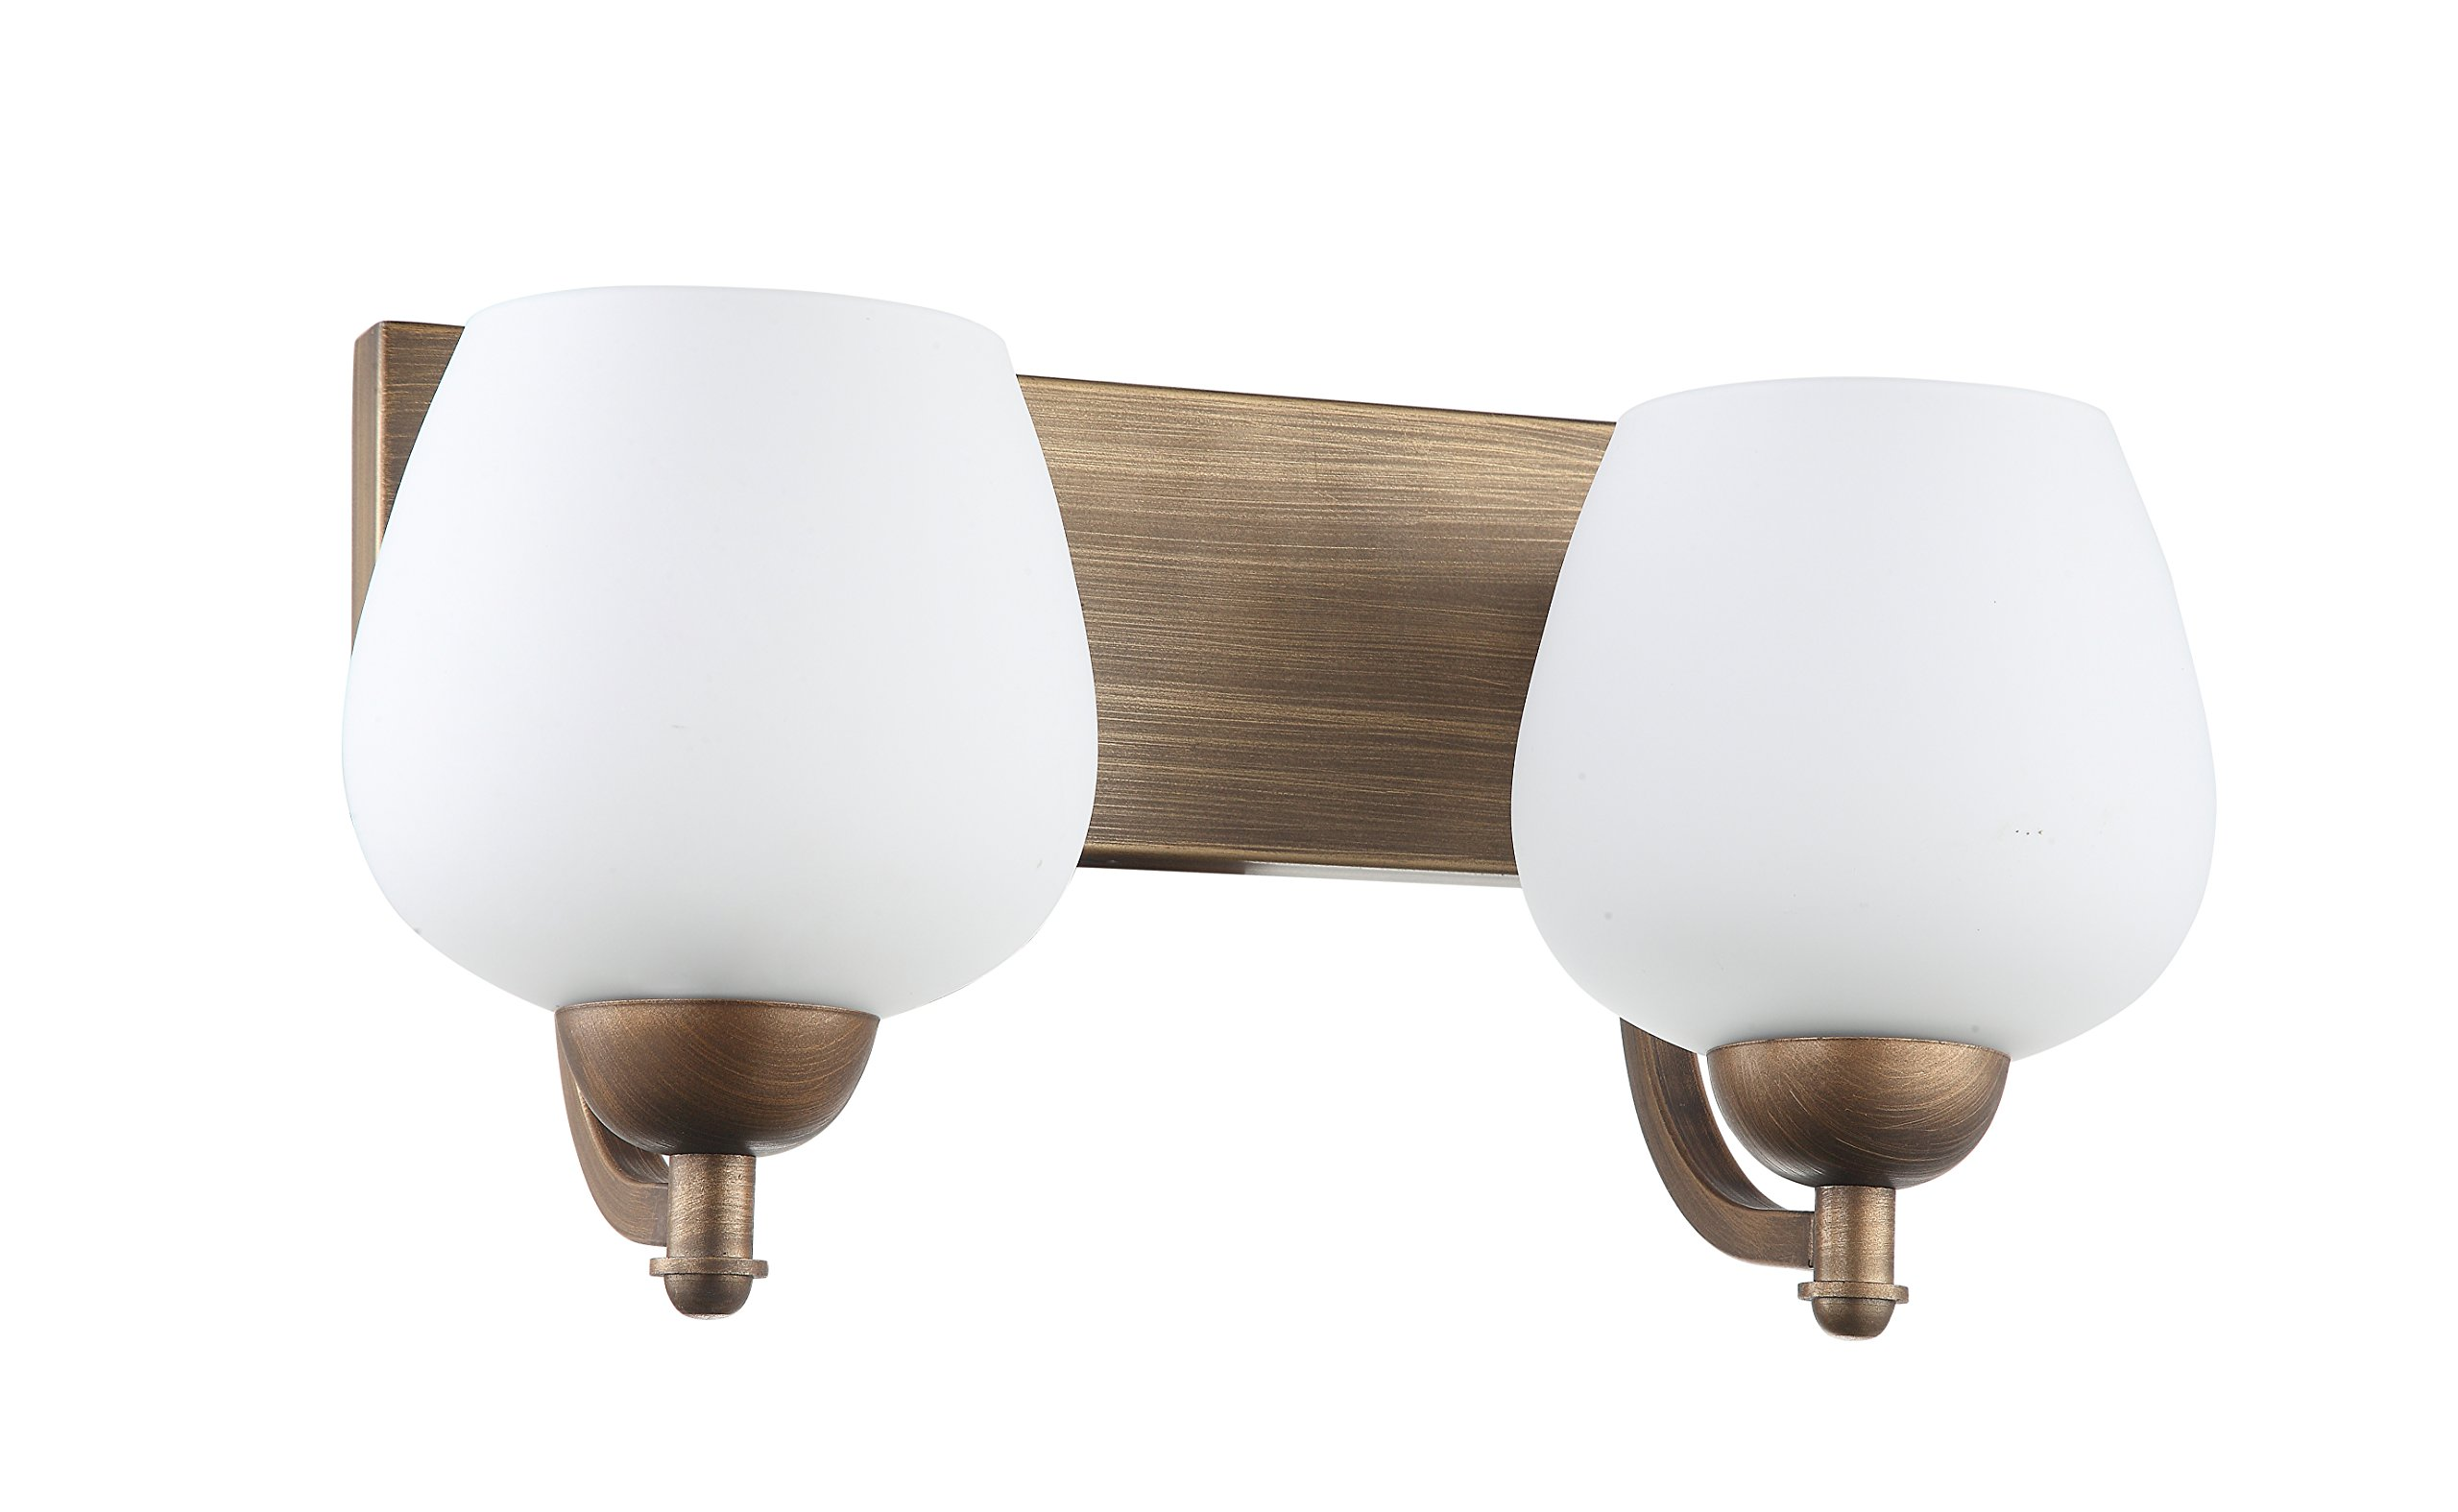 IN HOME 2-Light VANITY/BATHROOM FIXTURE VF29, Bronze Finish with Opal Glass Shade, UL listed